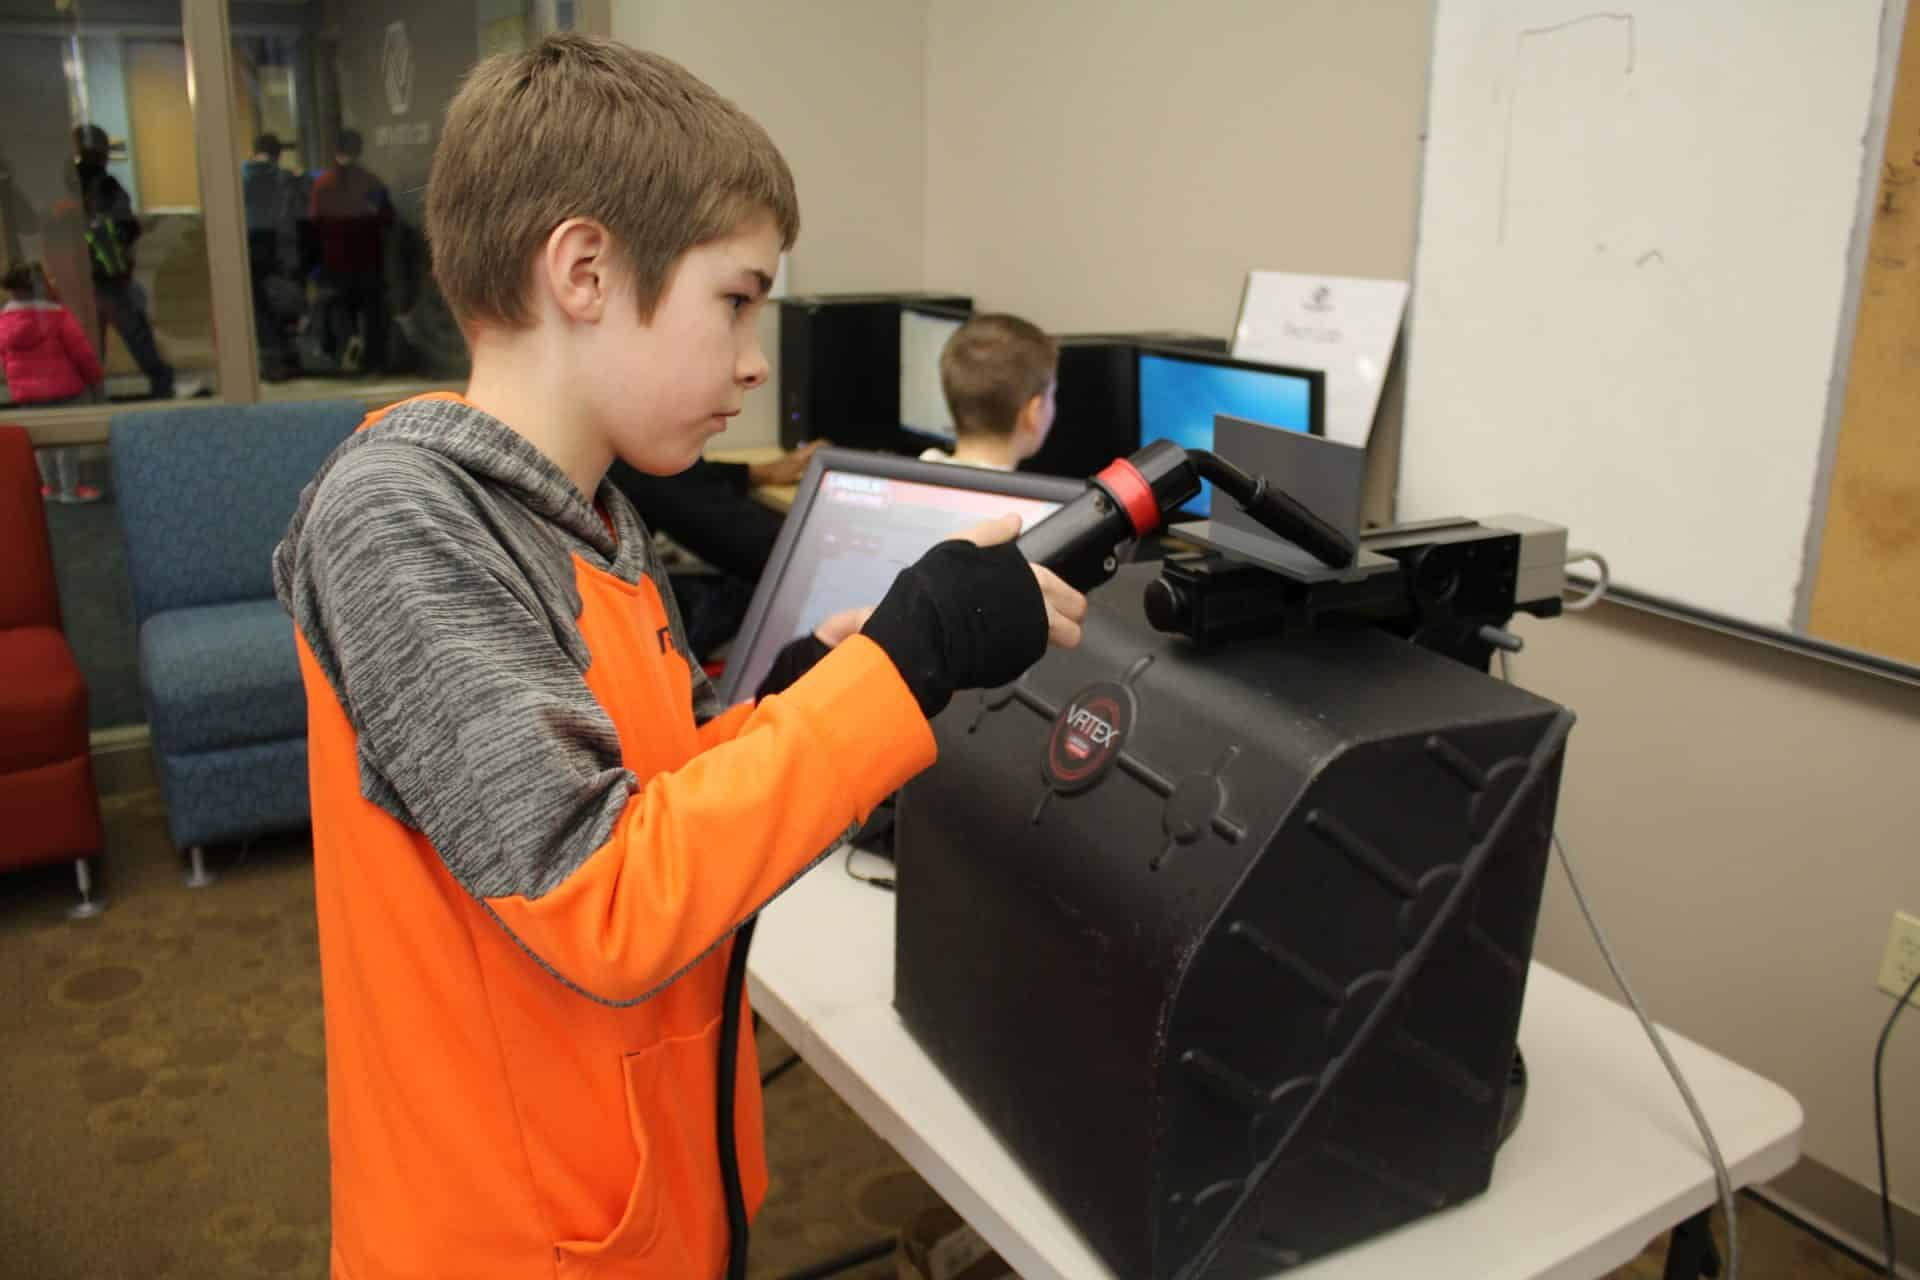 Young boy trys out a virtual welder at Boys and Girls Club